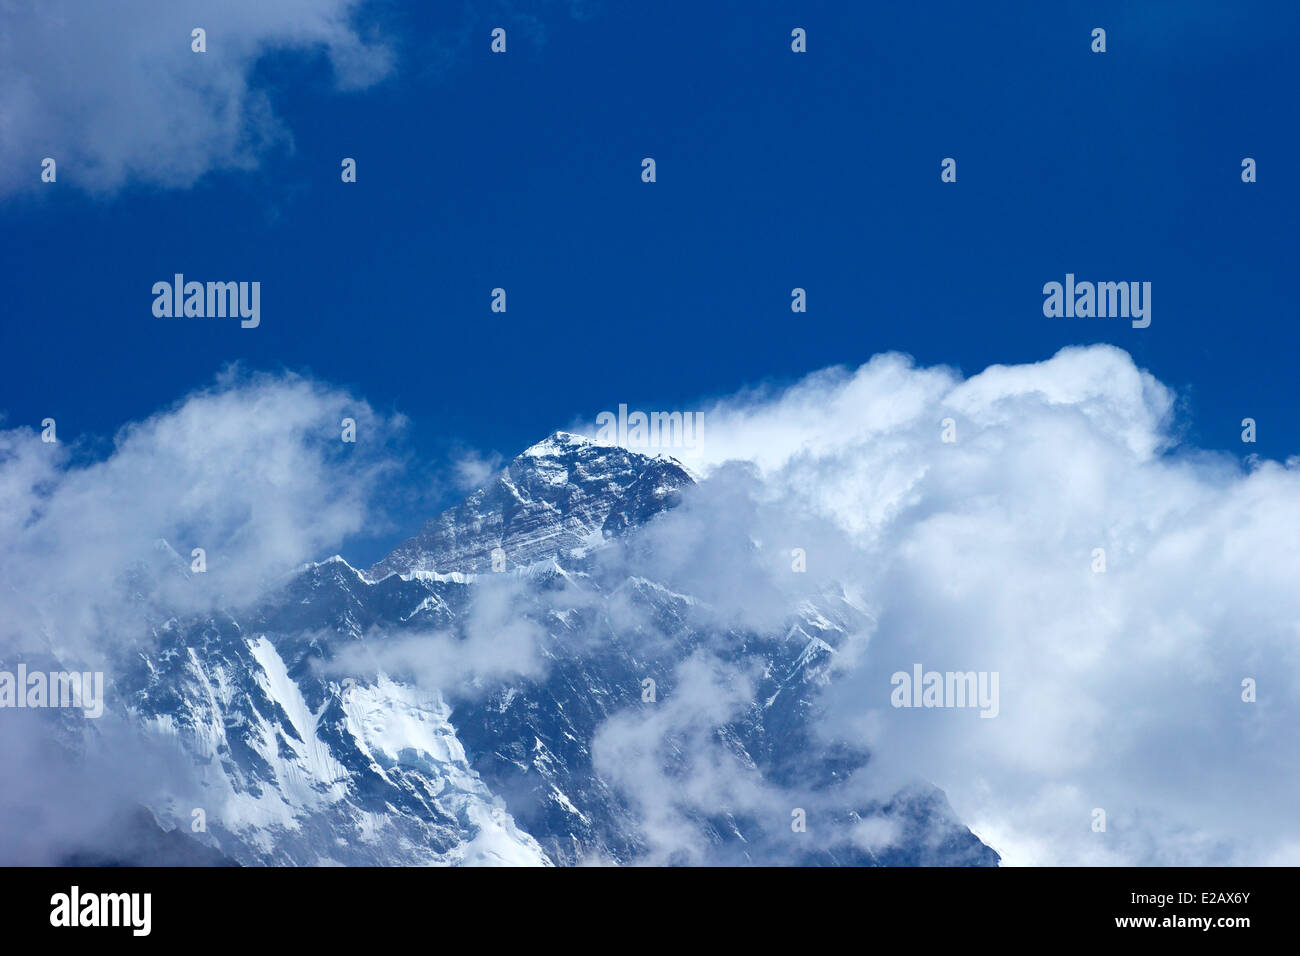 View of Mount Everest from Everest View Hotel, near Namche Bazaar, Nepal, Asia - Stock Image